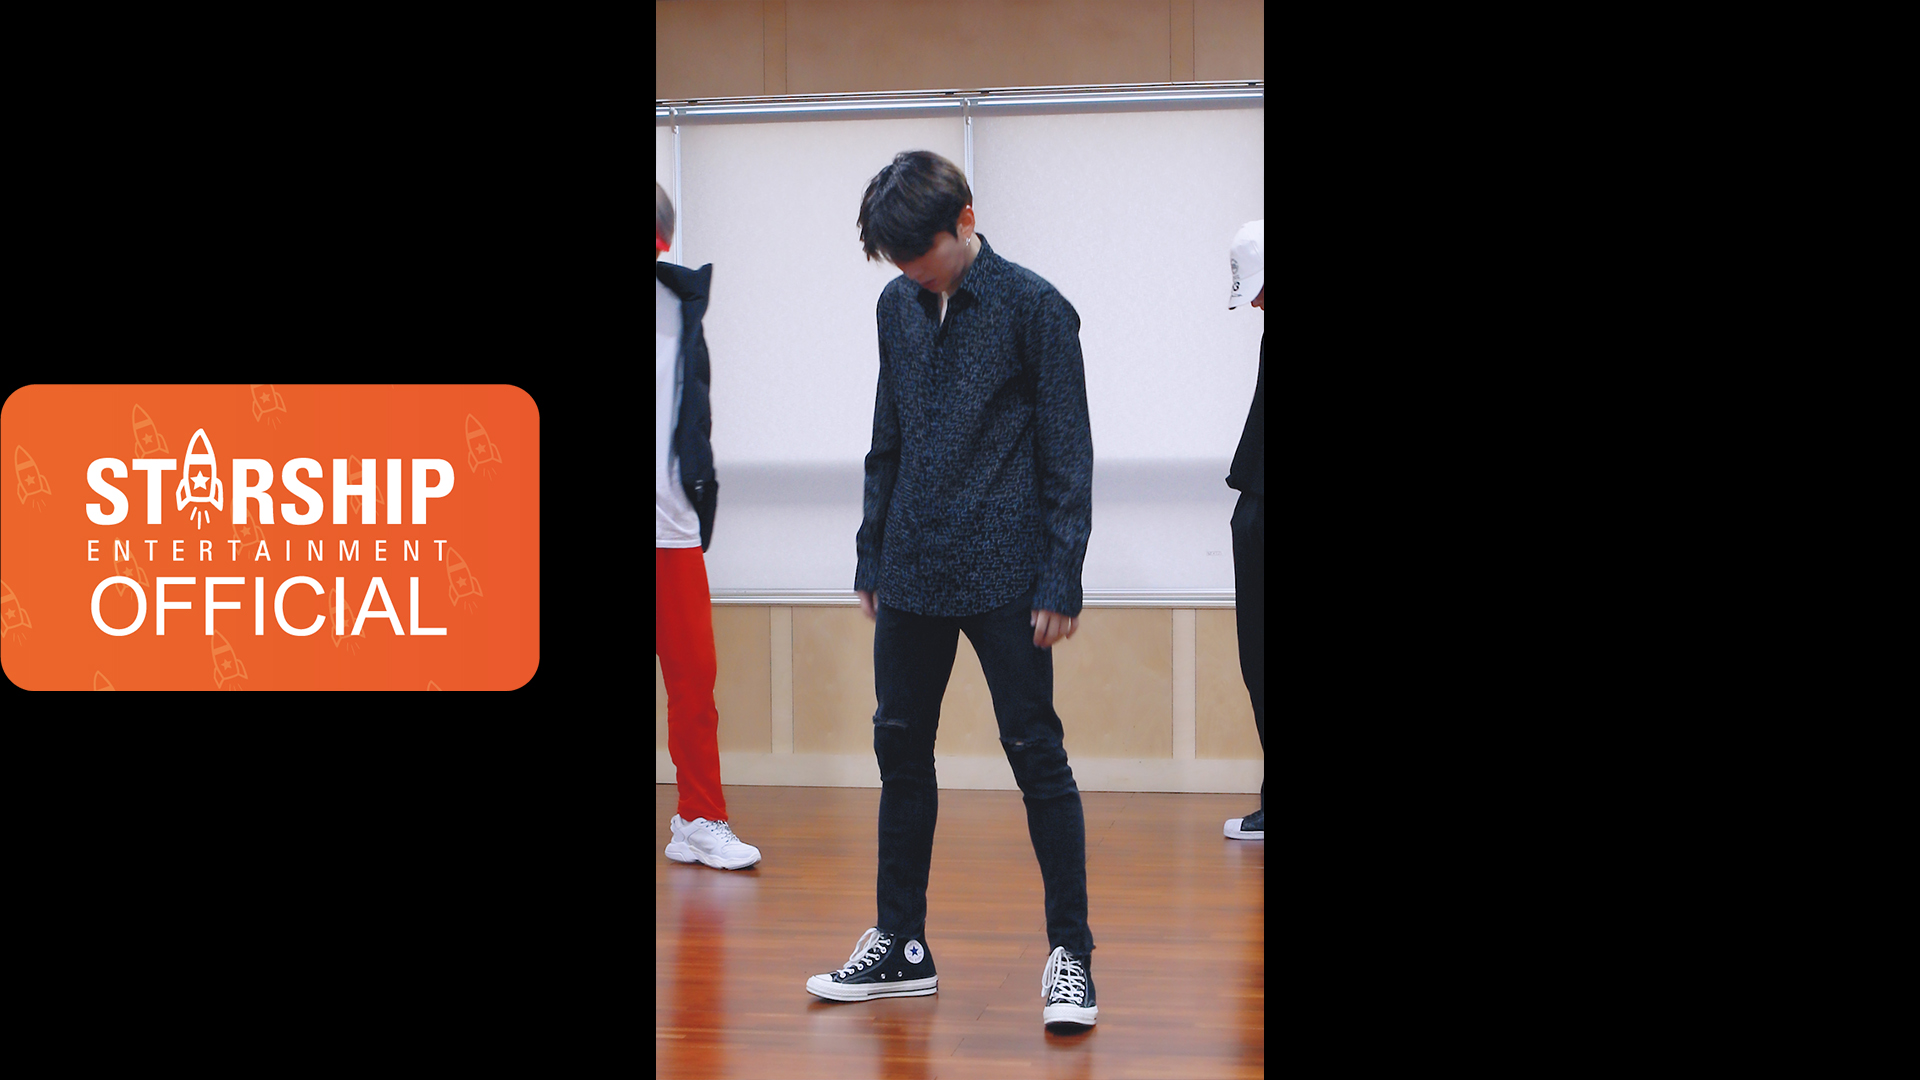 [KIHYUN][Dance Practice] 몬스타엑스 (MONSTA X) - 'SHOOT OUT' Vertical Video